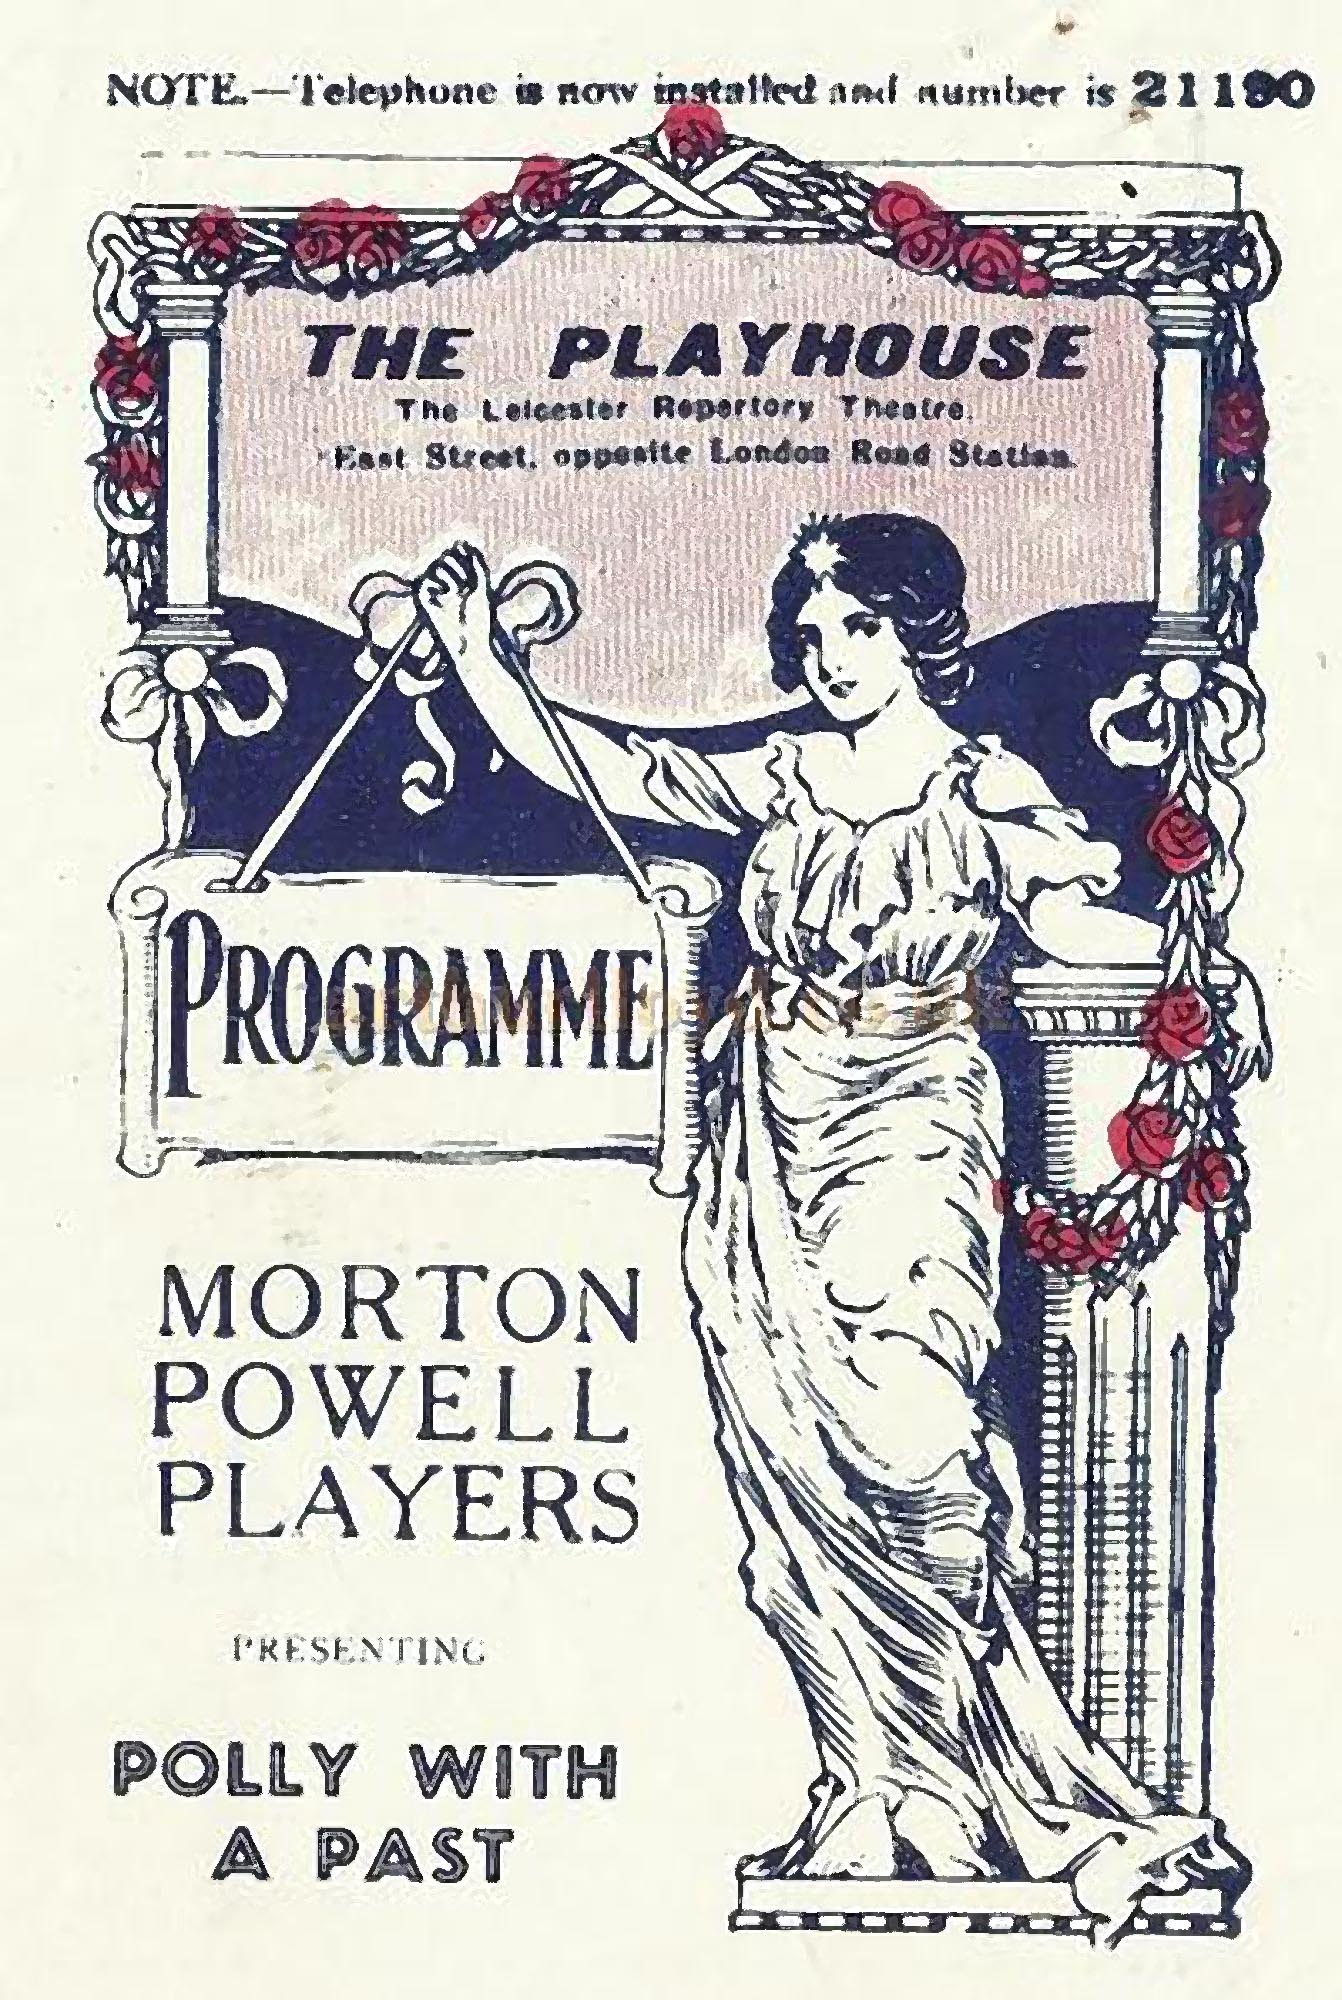 An early programme for The Playhouse Theatre - David Garratt and arthurlloyd.co.uk